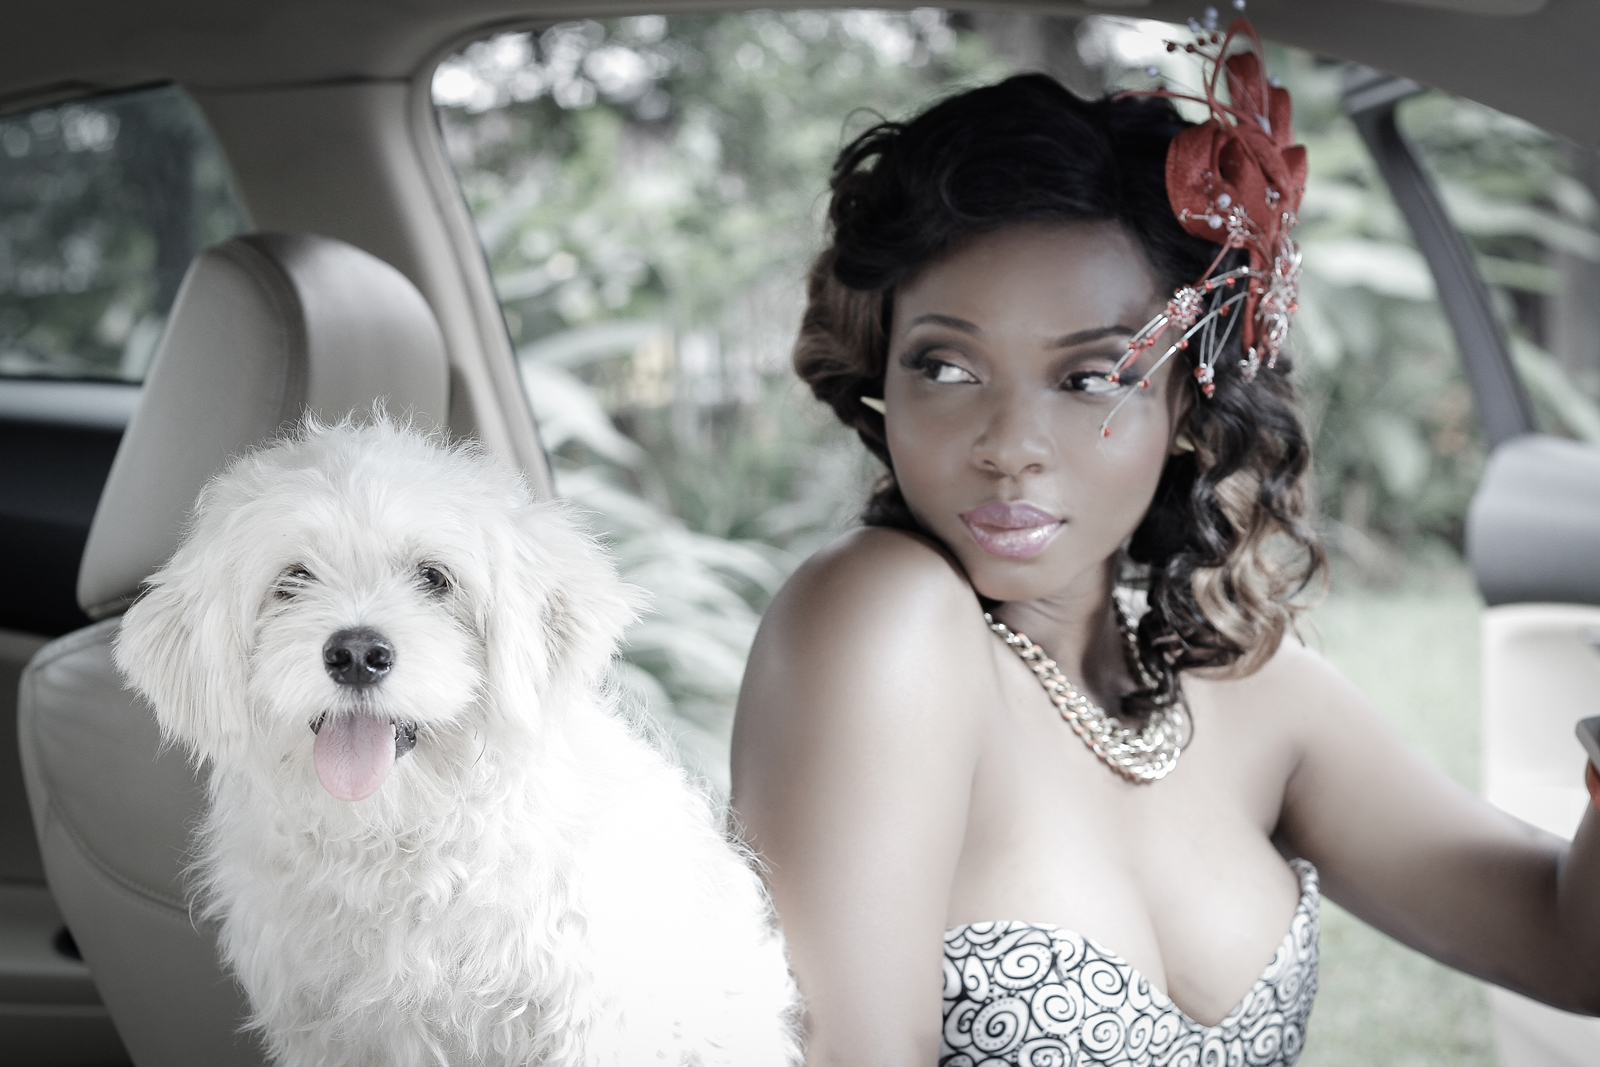 Yemi Alade disappoints fans at Berlin show